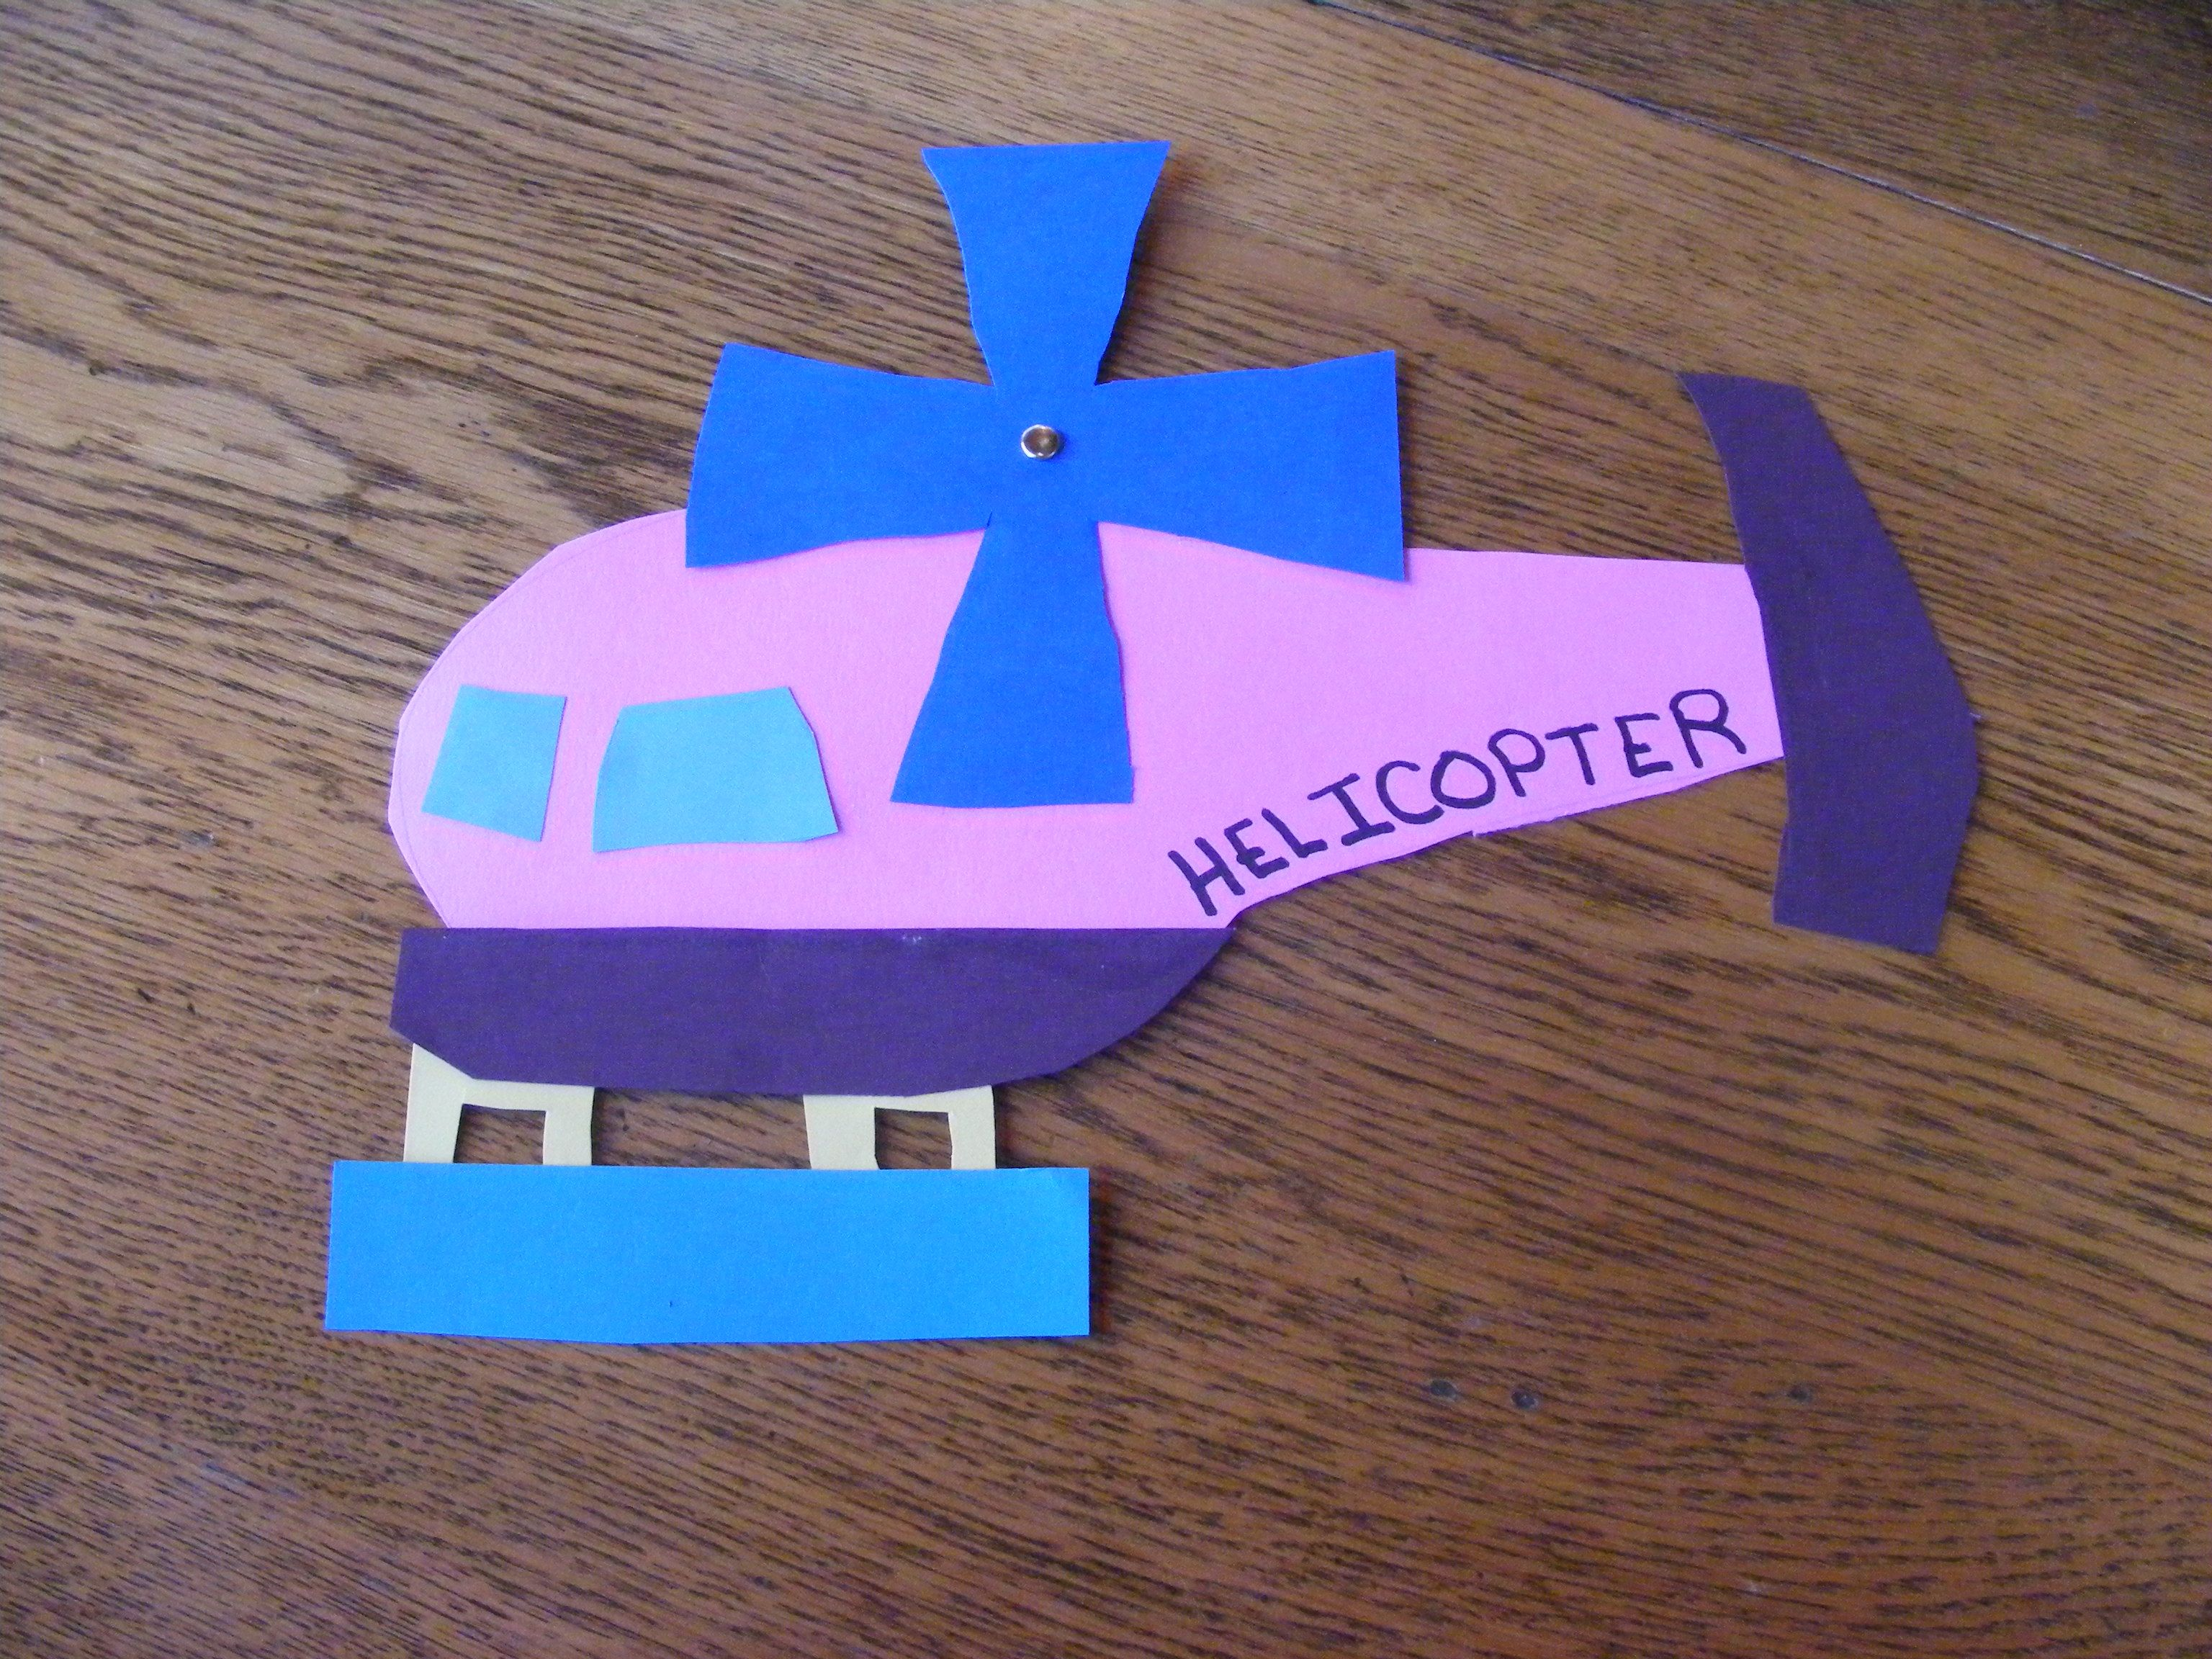 We cut out and glued together pieces of a helicopter for H.